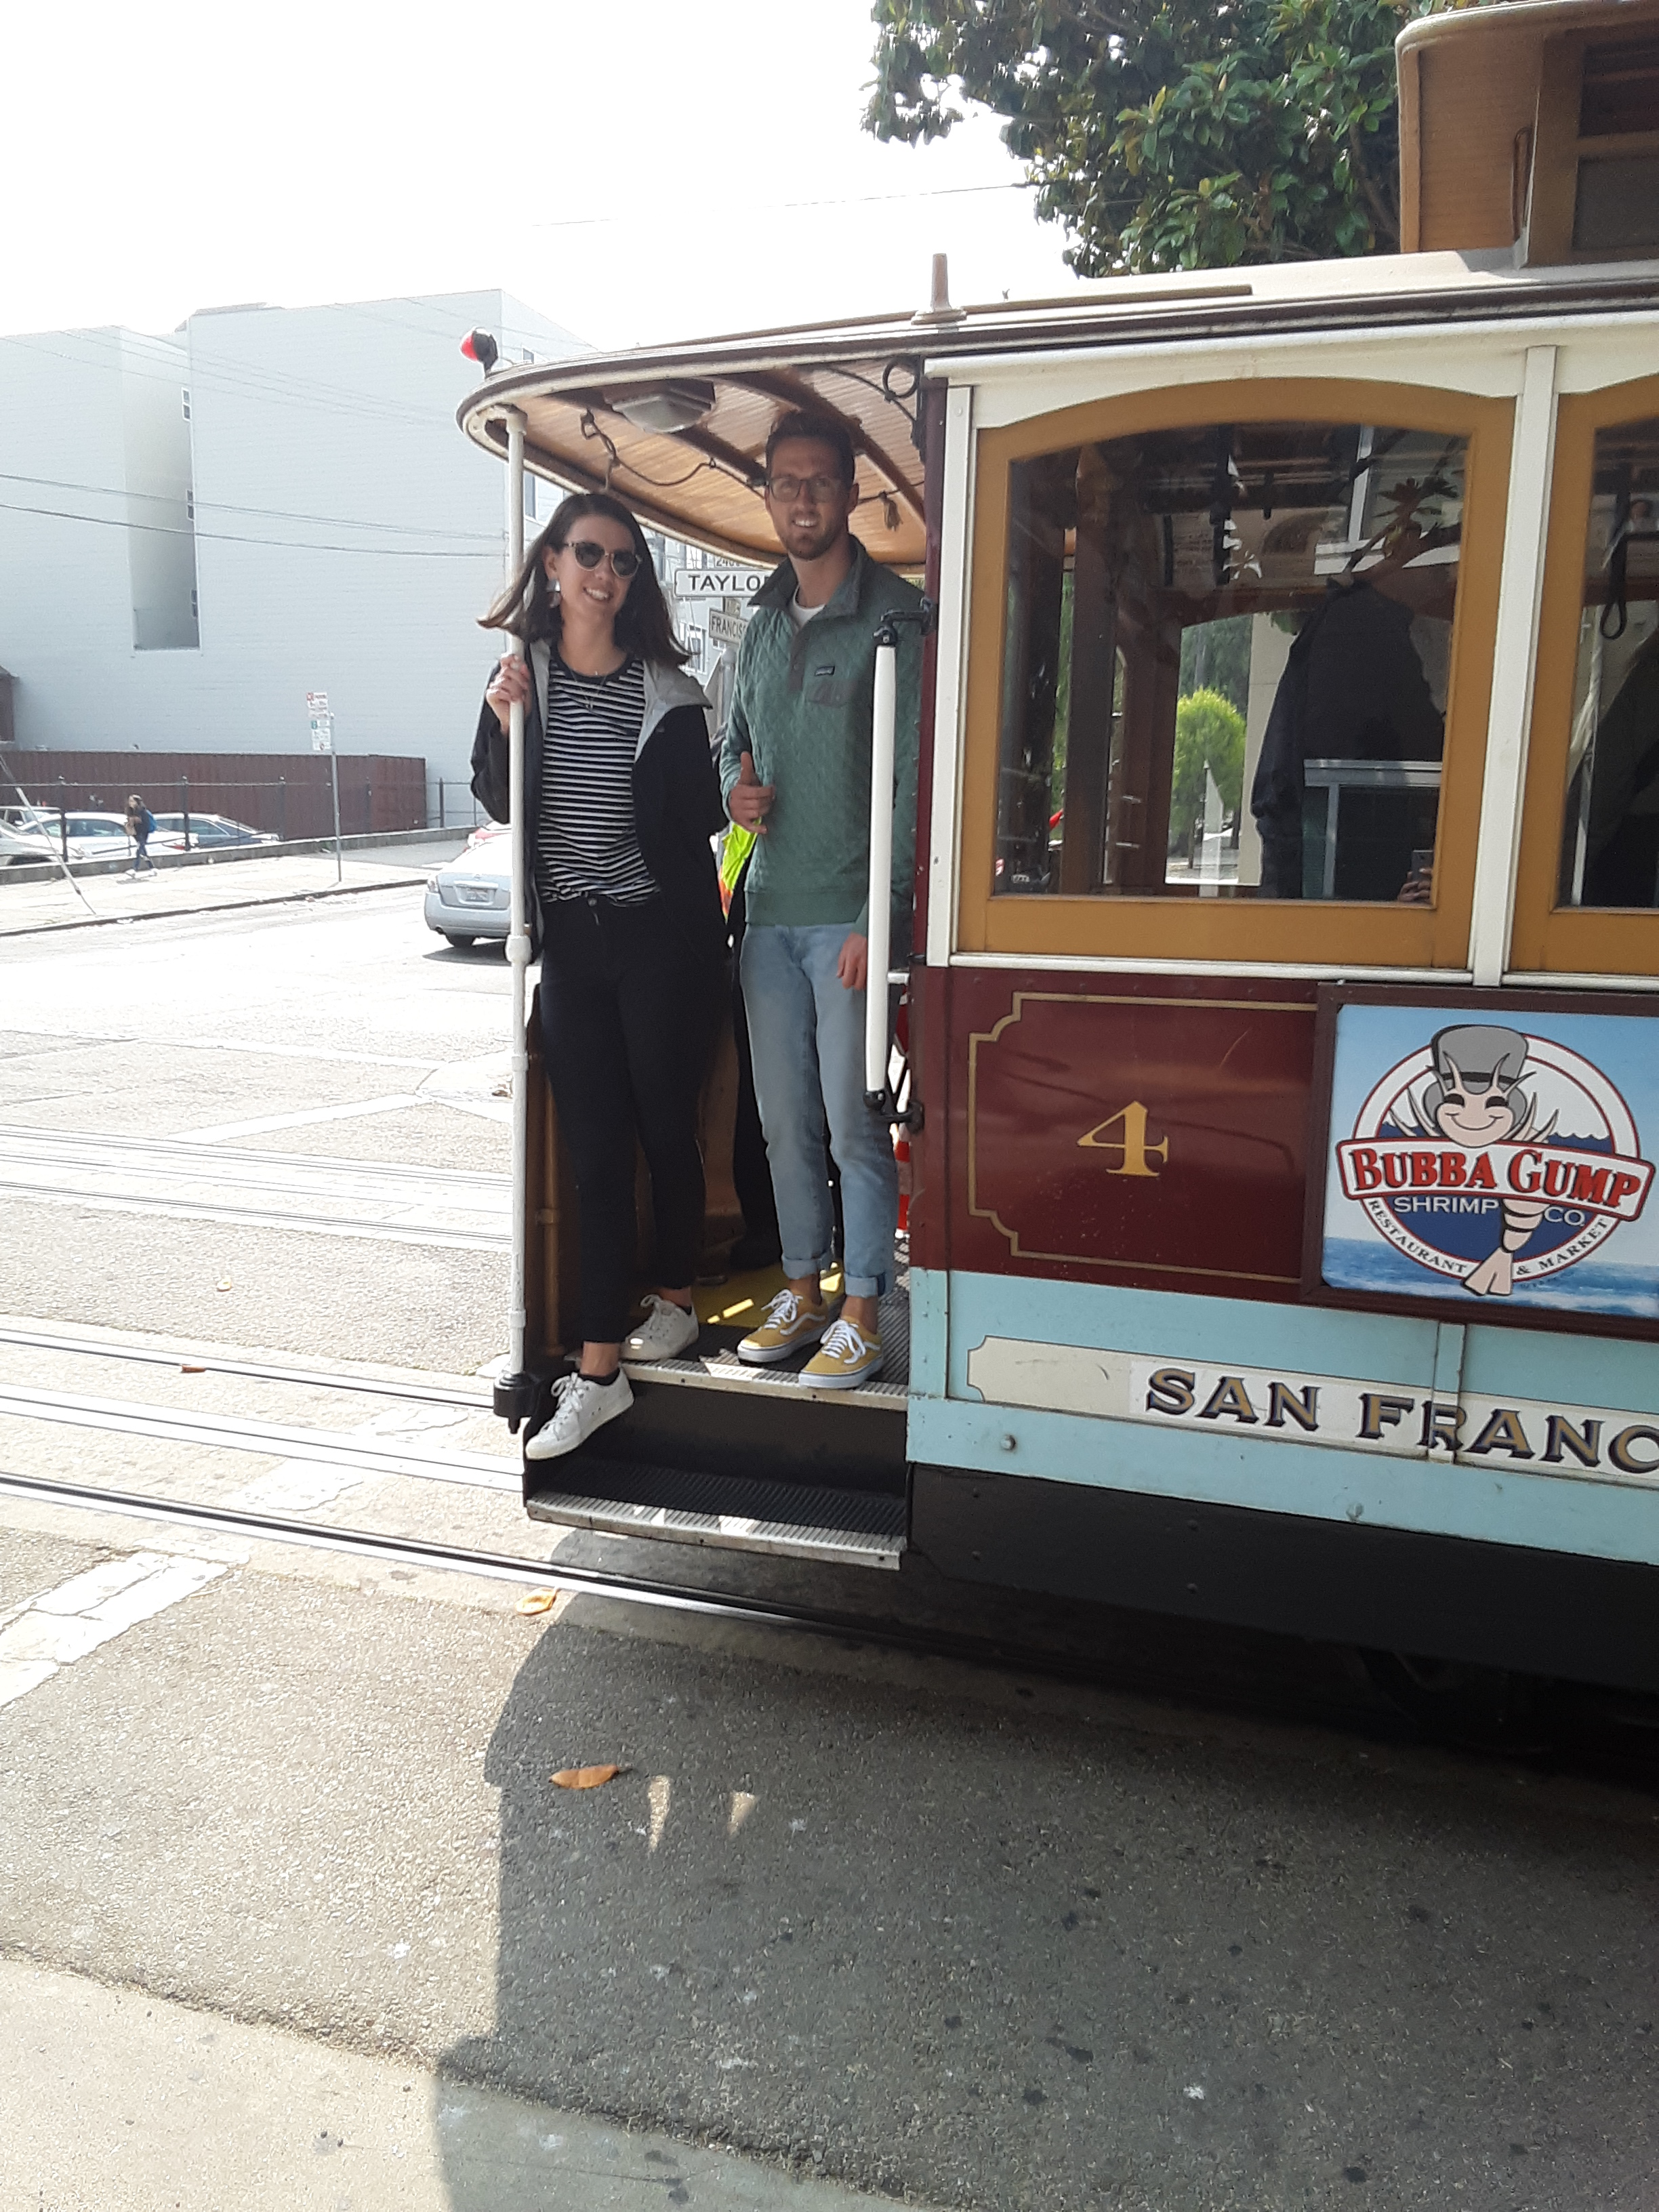 Ride The Tram